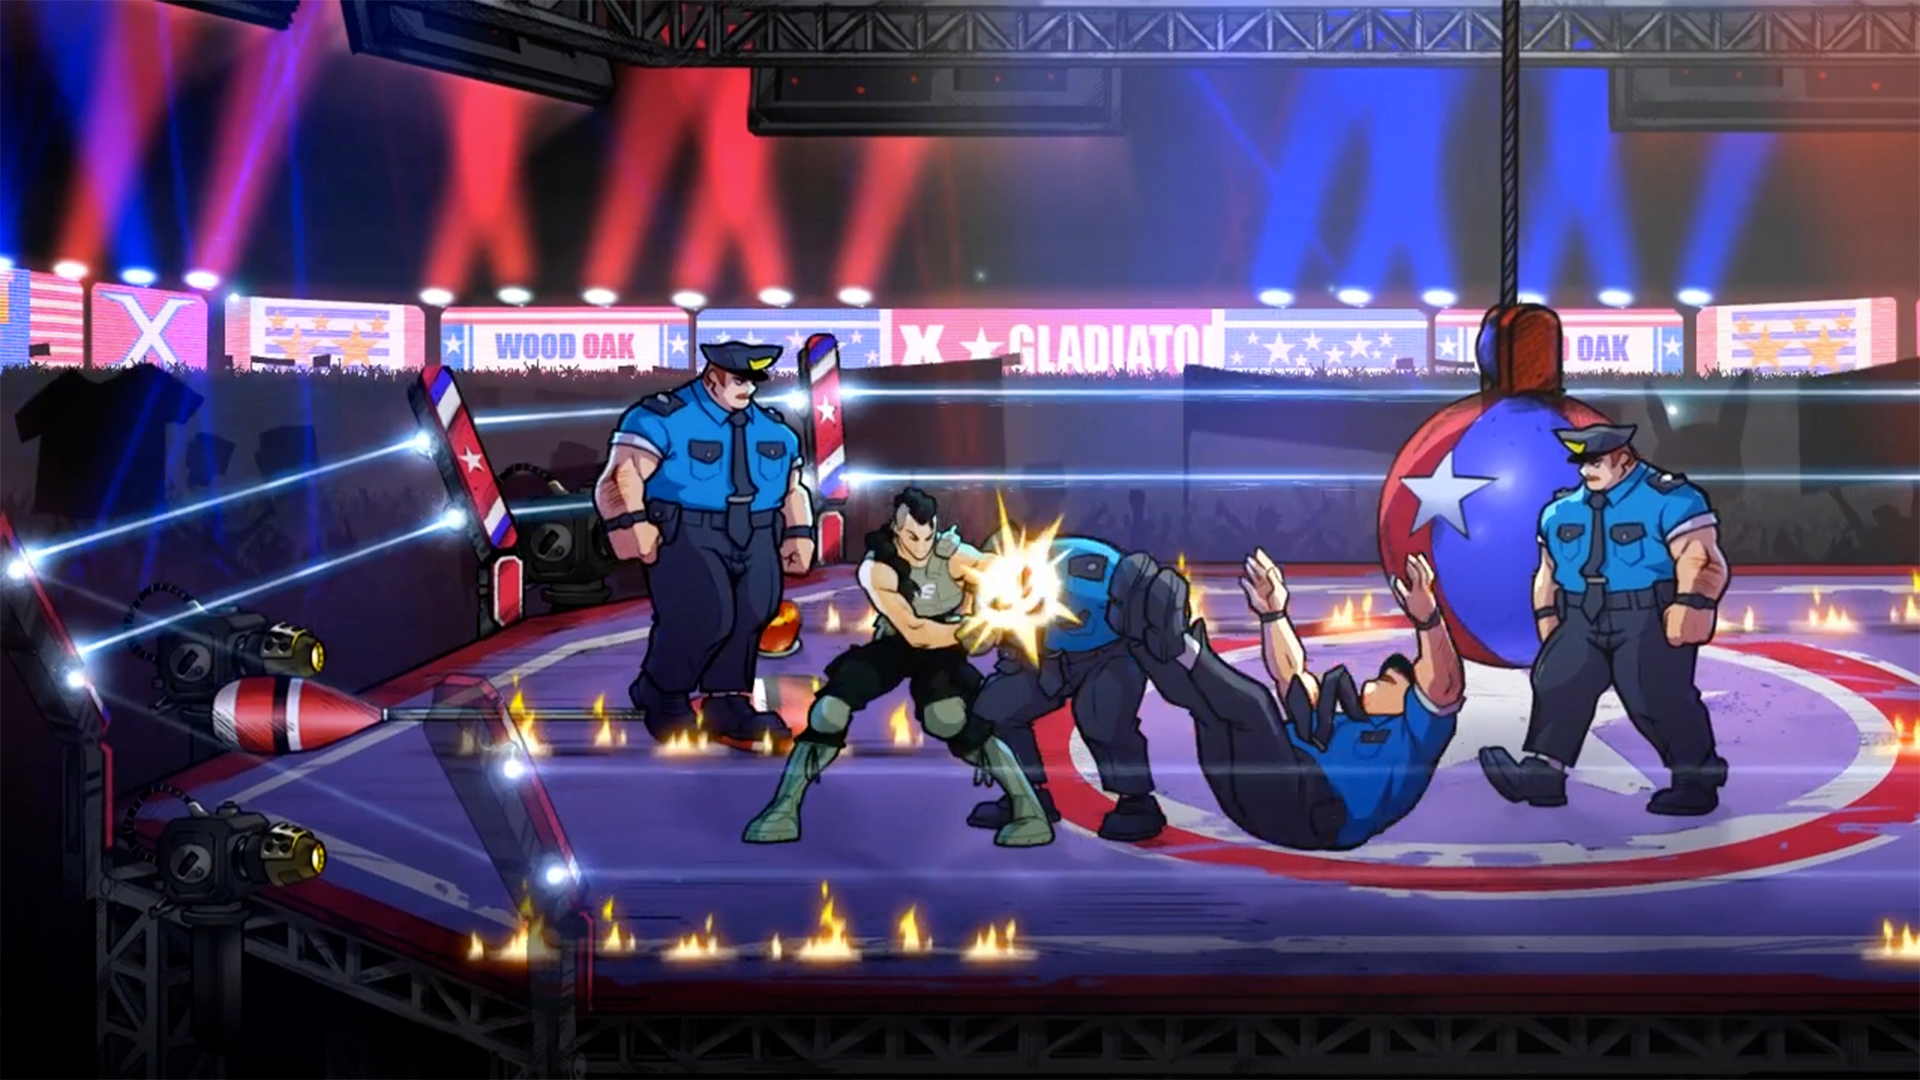 Estelle Aguirre fights cops in a wrestling ring in Streets of Rage 4